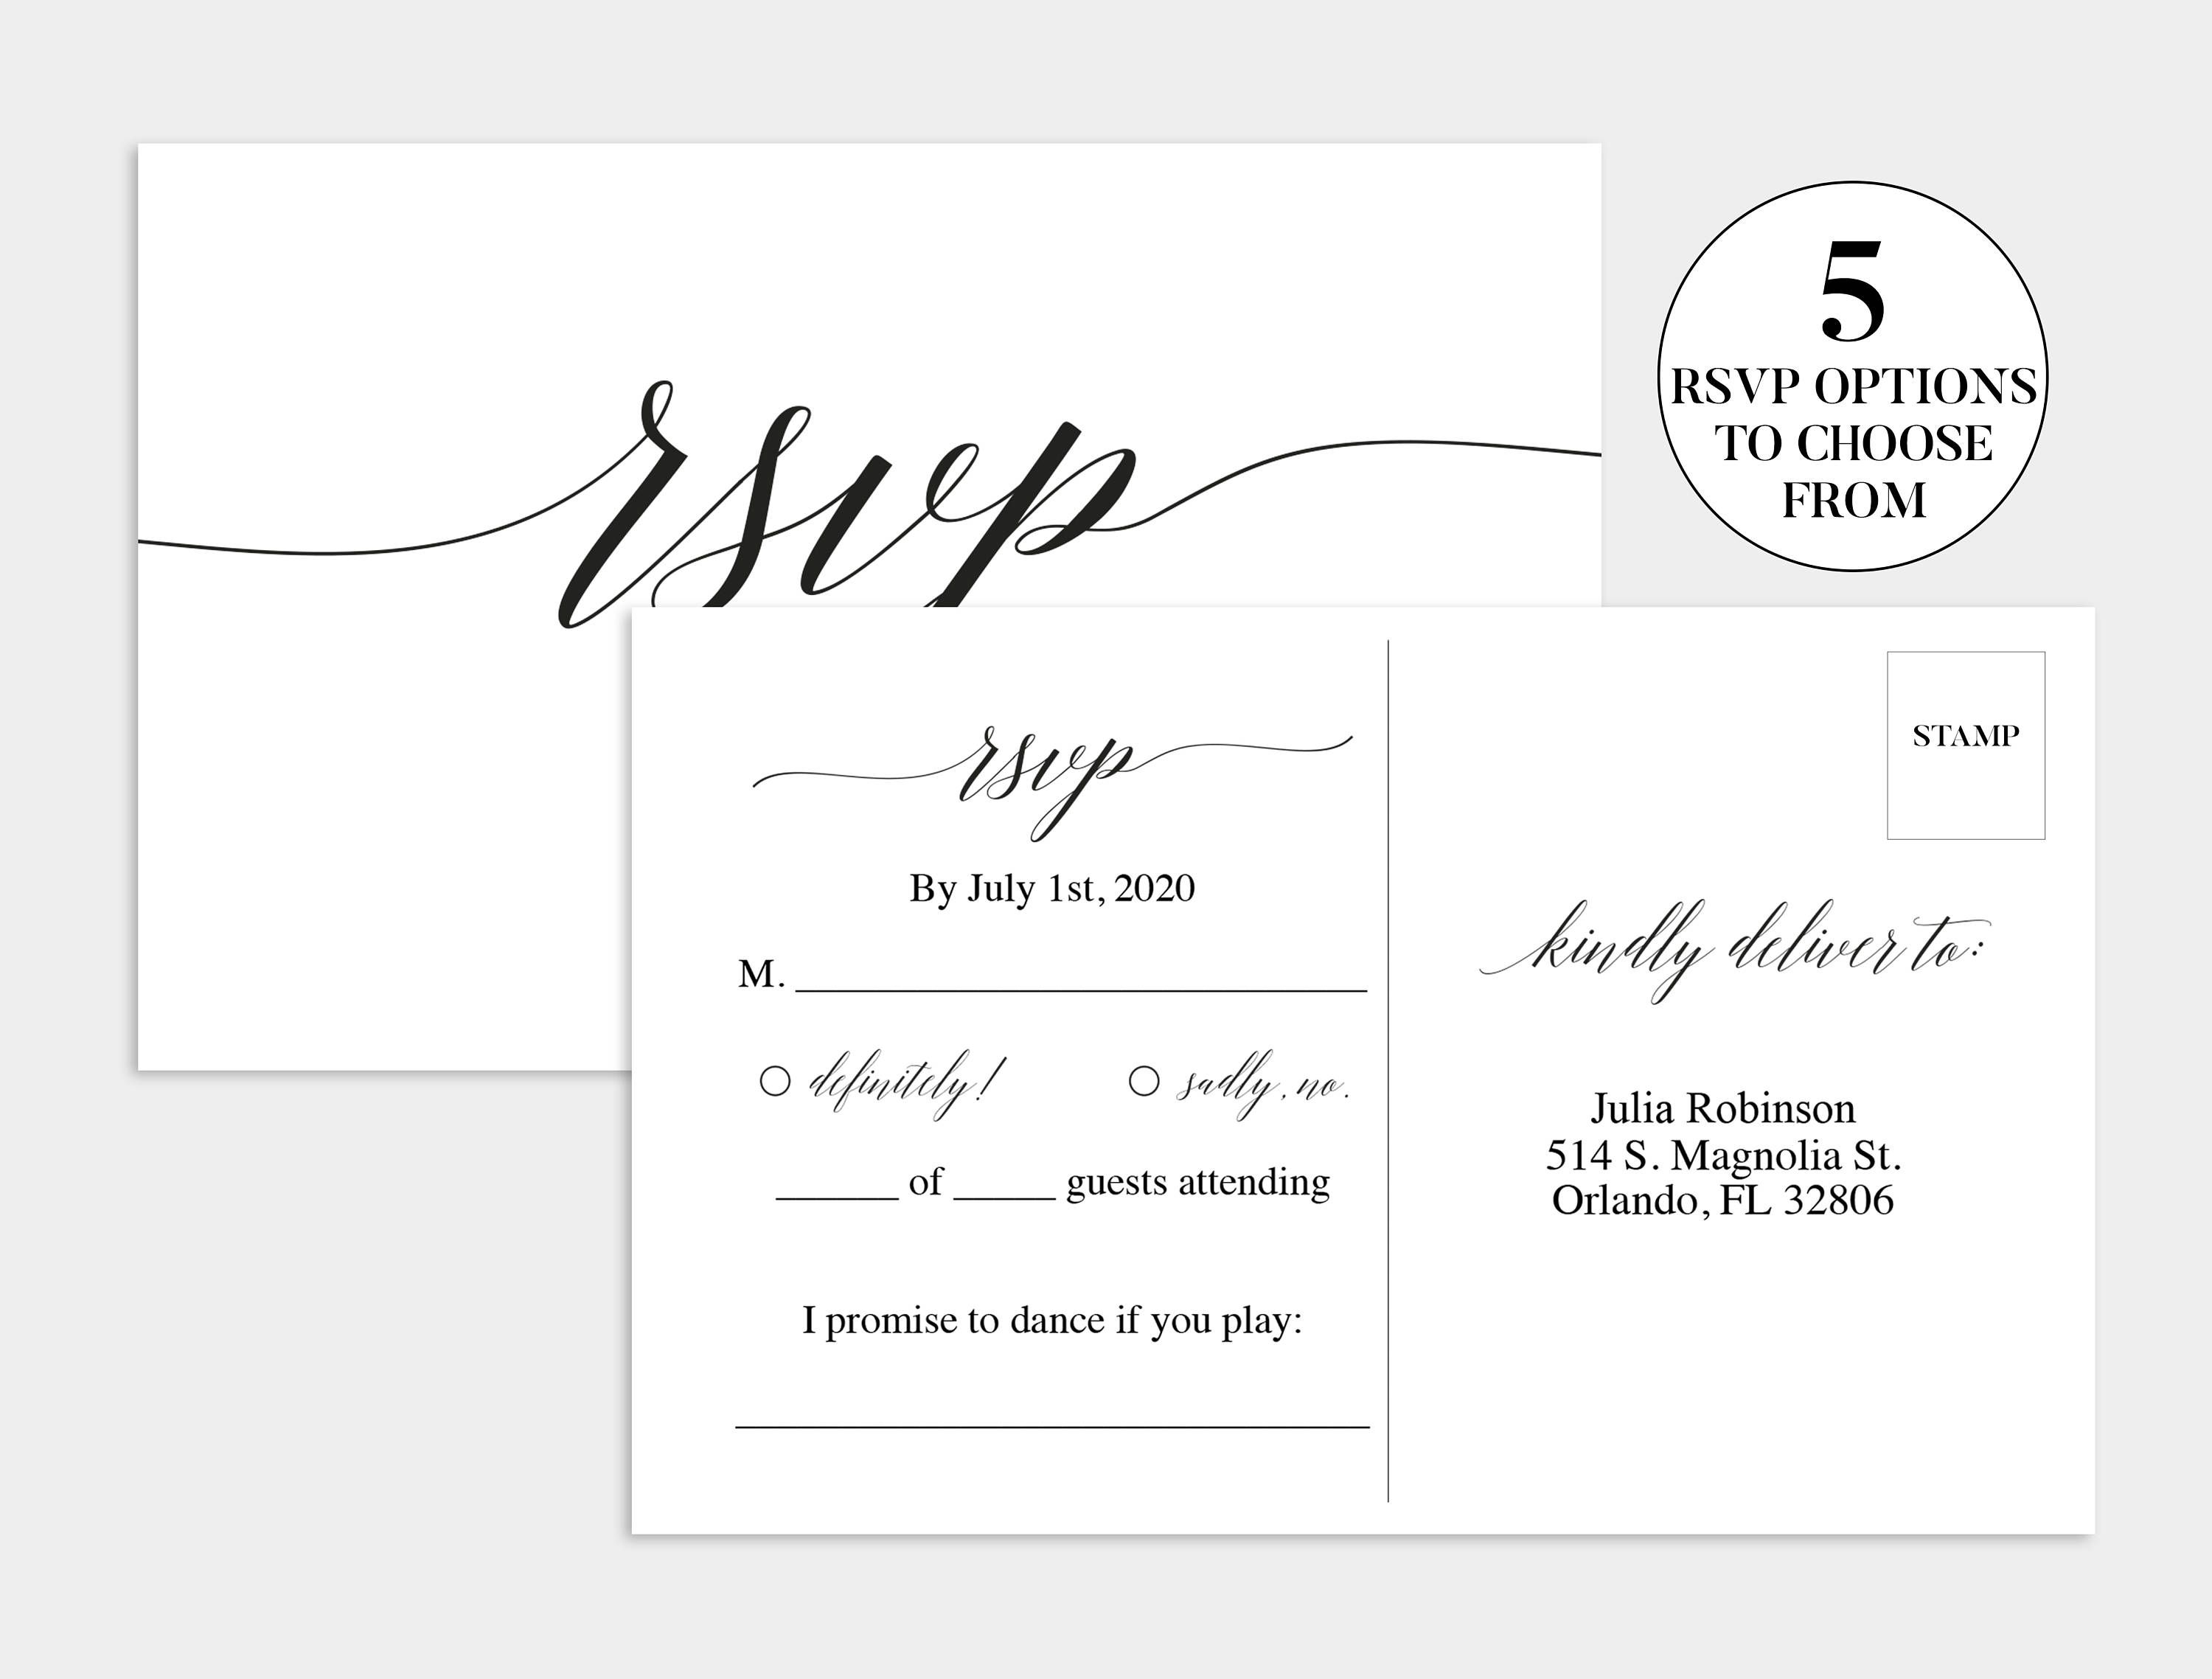 Wedding Rsvp Card Wedding Rsvp Template Wedding Rsvp Etsy Wedding Rsvp Postcard Wedding Reply Cards Rsvp Postcard